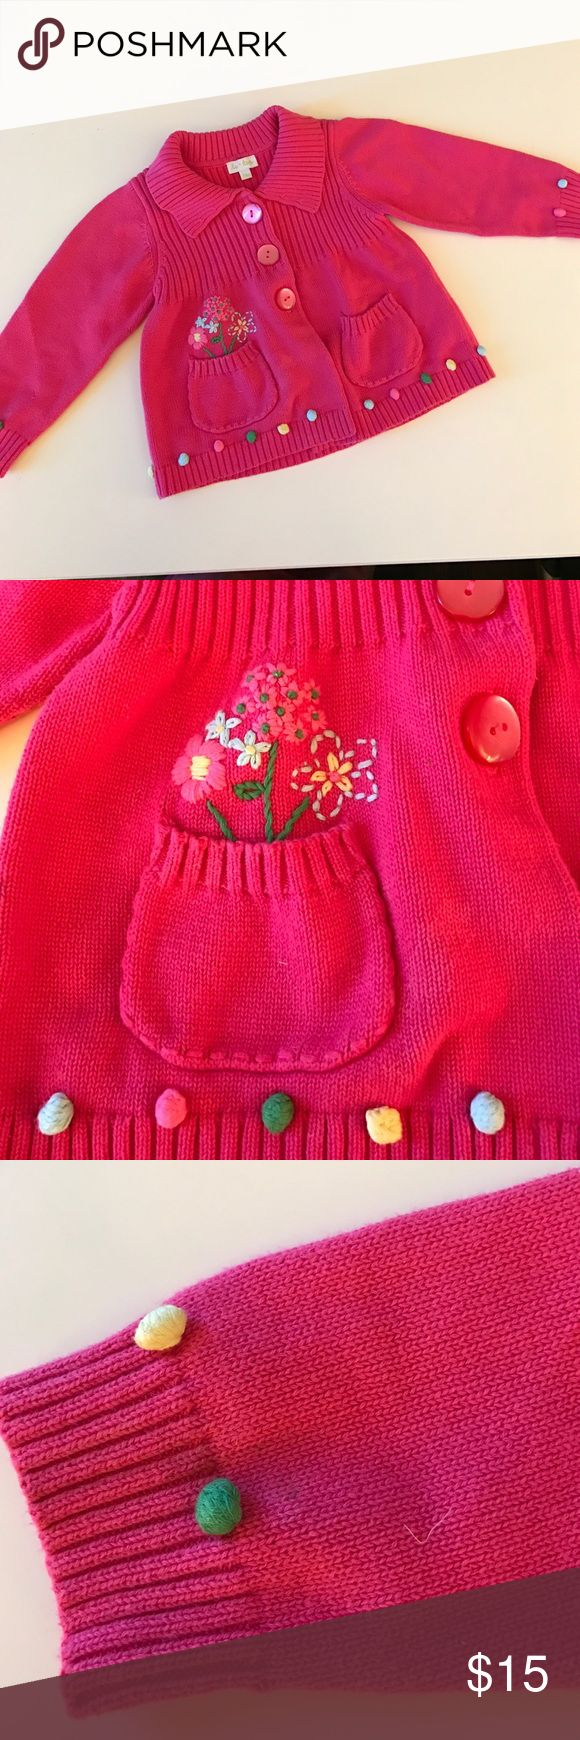 Le Top Hot Pink Sweater 24 mos w/ cute flowers 🌺🌺🌺🌺So Sweet. Little Girls in Pretty Pink Cardigans🌷🌷🌷. Le top is beautiful line of kids clothing sole in boutiques. Le Top Shirts & Tops Sweaters